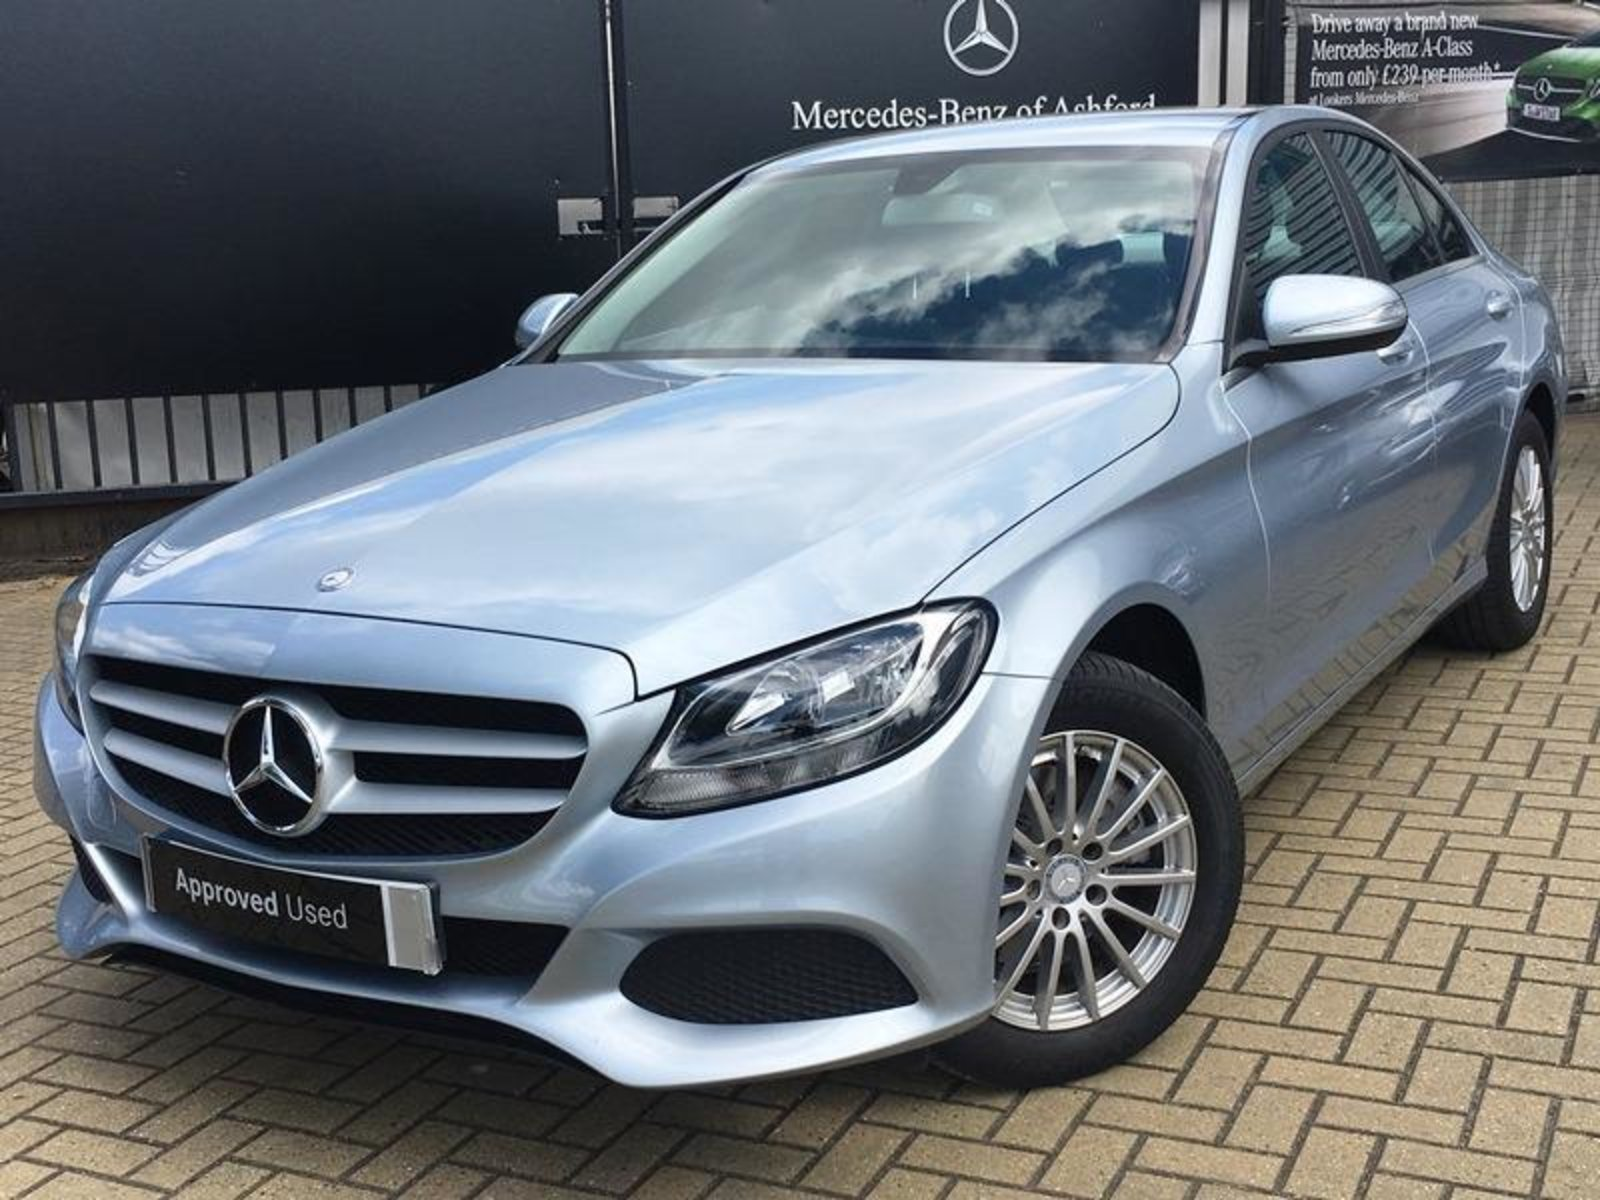 2015 Mercedes Benz C-Class C200 Executive Petrol Auto